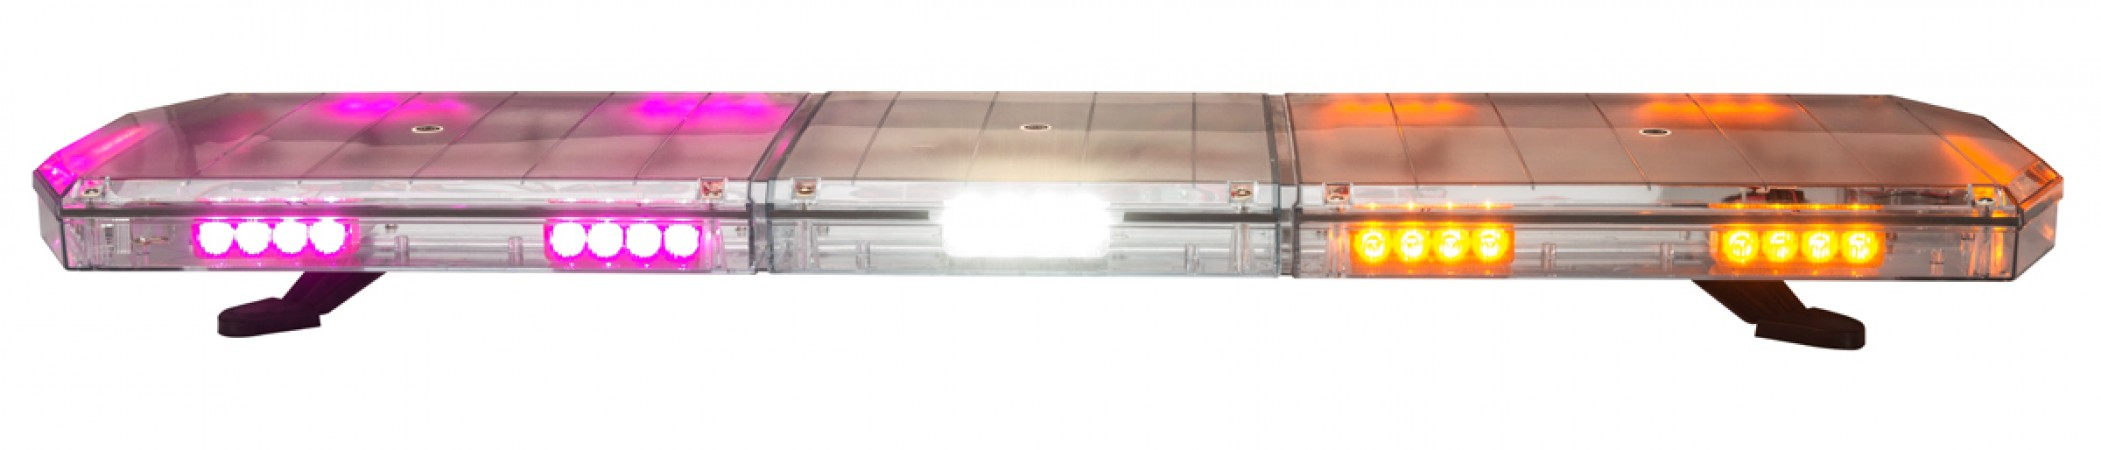 12v 2000 Series LED Lightbar